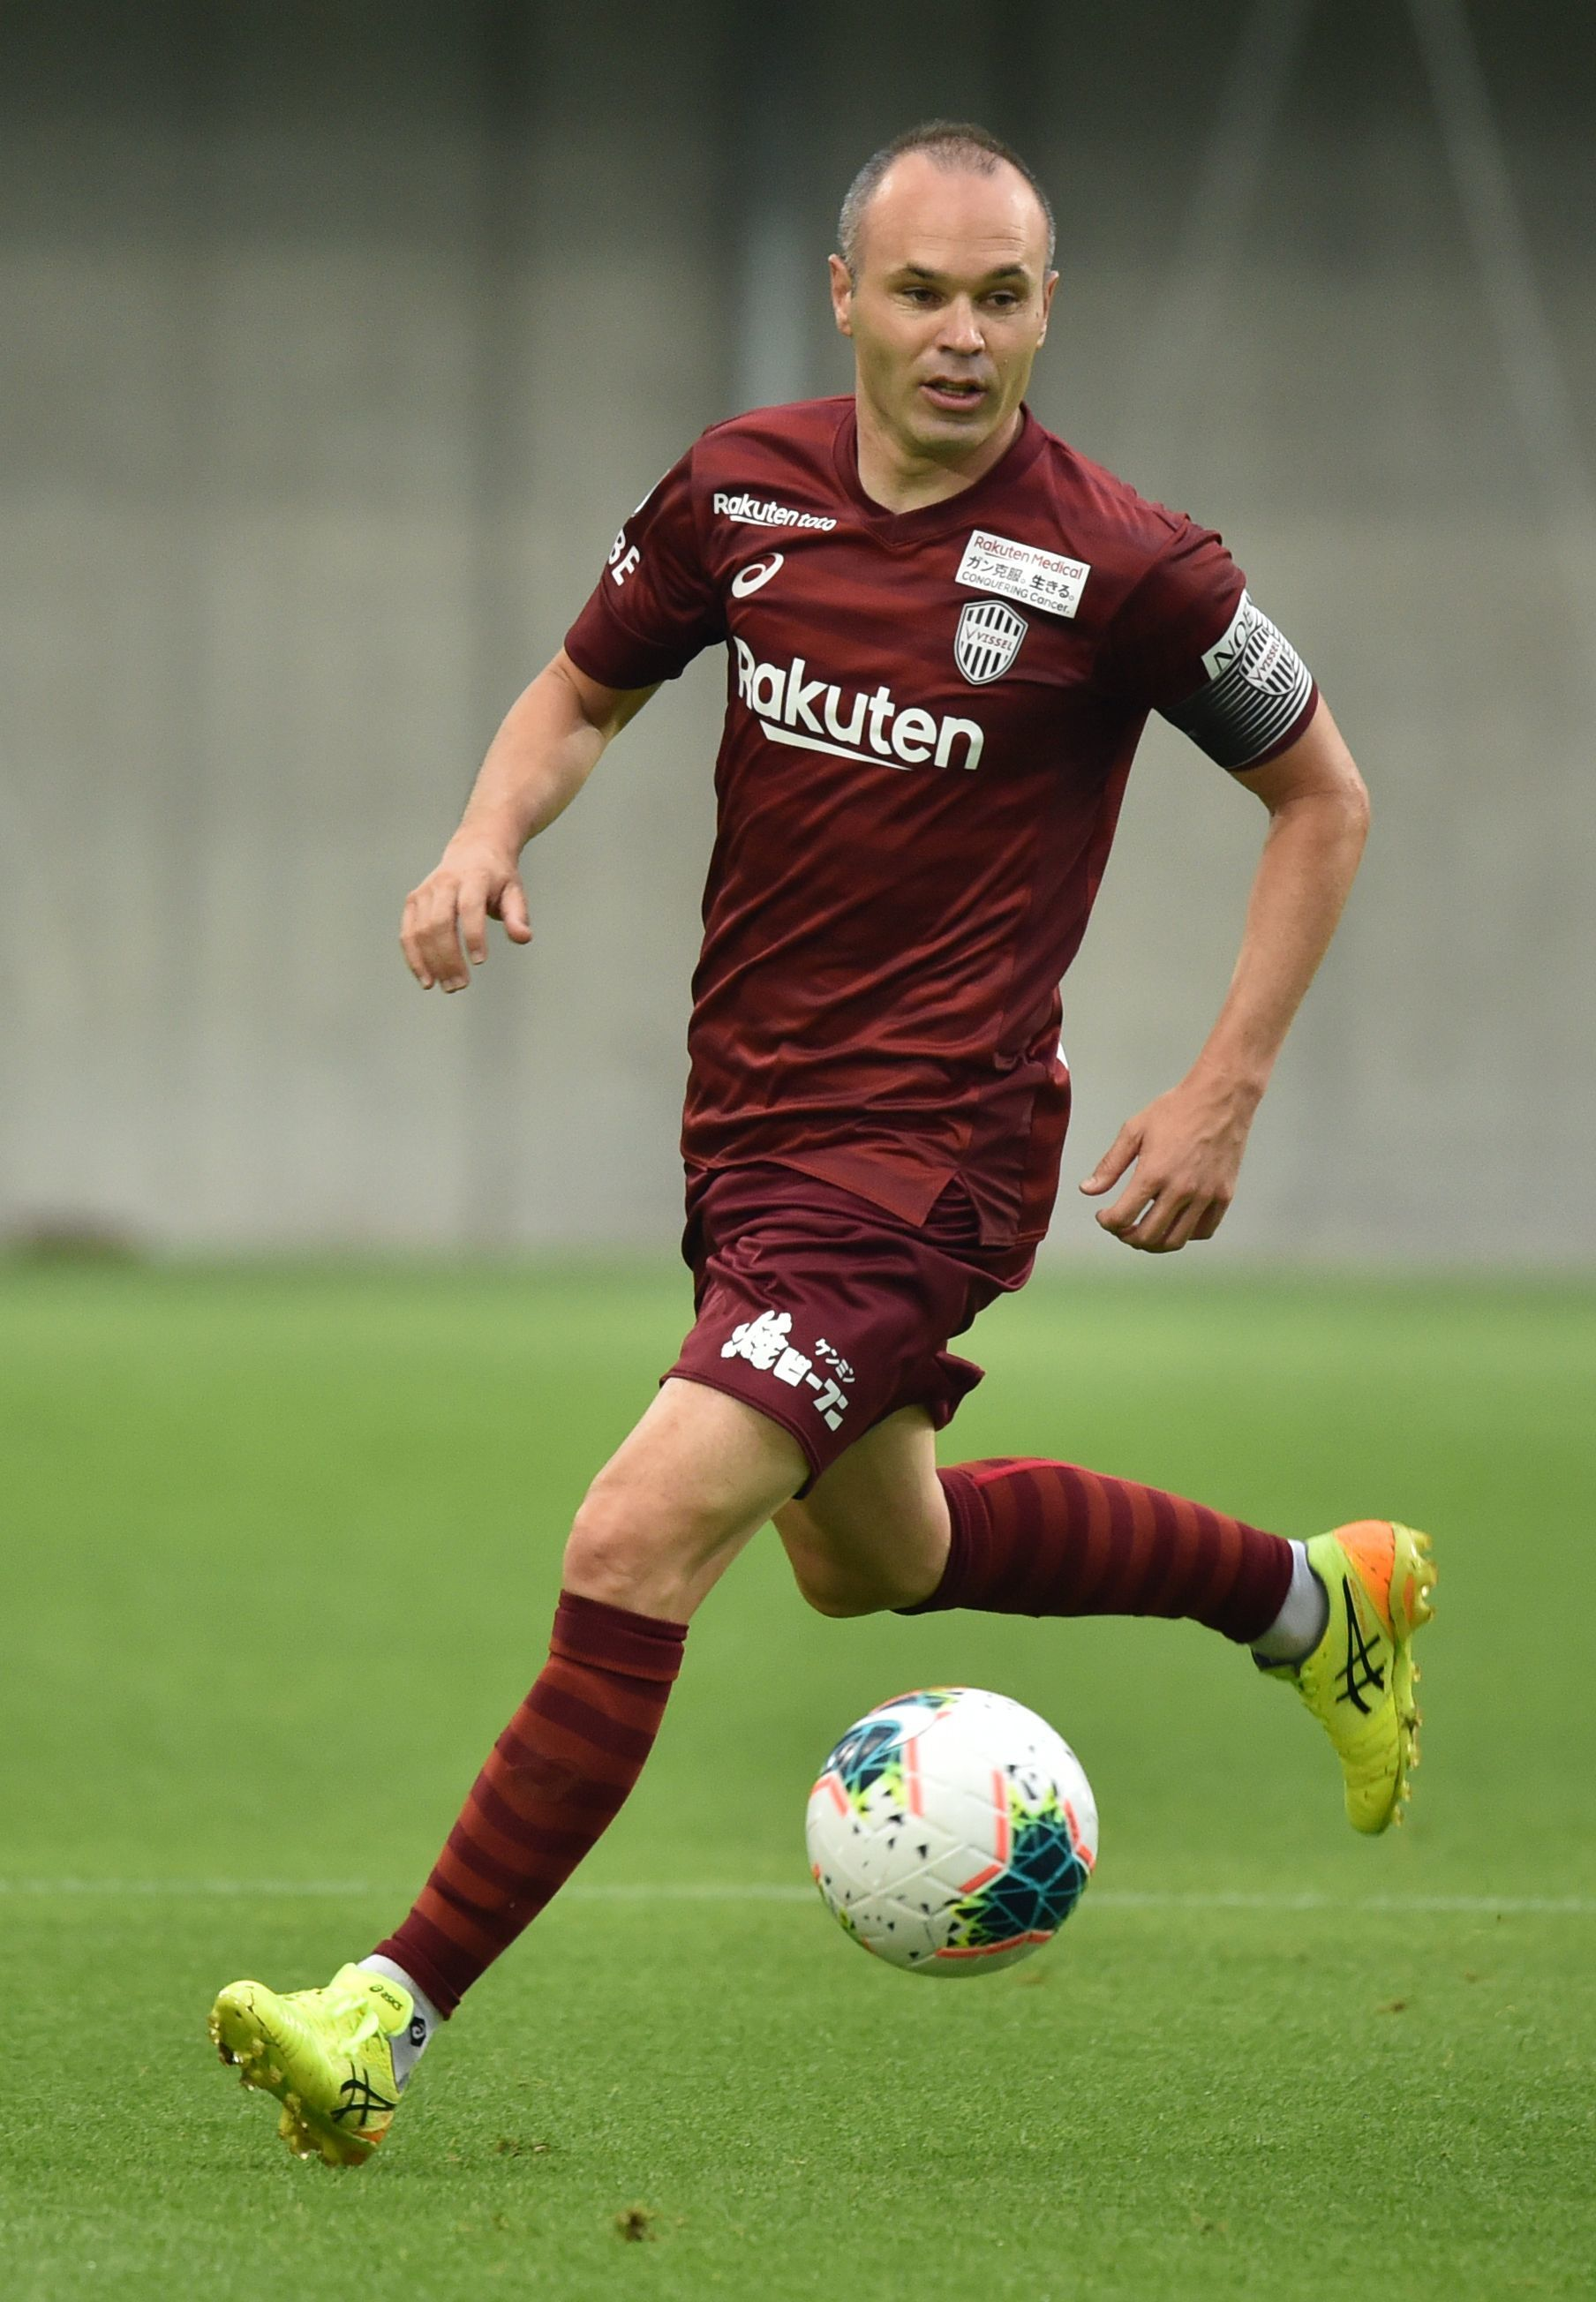 Vissel Kobes Spanish midfielder <HIT>Andres</HIT><HIT>Iniesta</HIT> dribbles the ball during the Rakuten Cup football match between Vissel Kobe and FC Barcelona, in Kobe on July 27, 2019. (Photo by Kazuhiro NOGI / AFP)